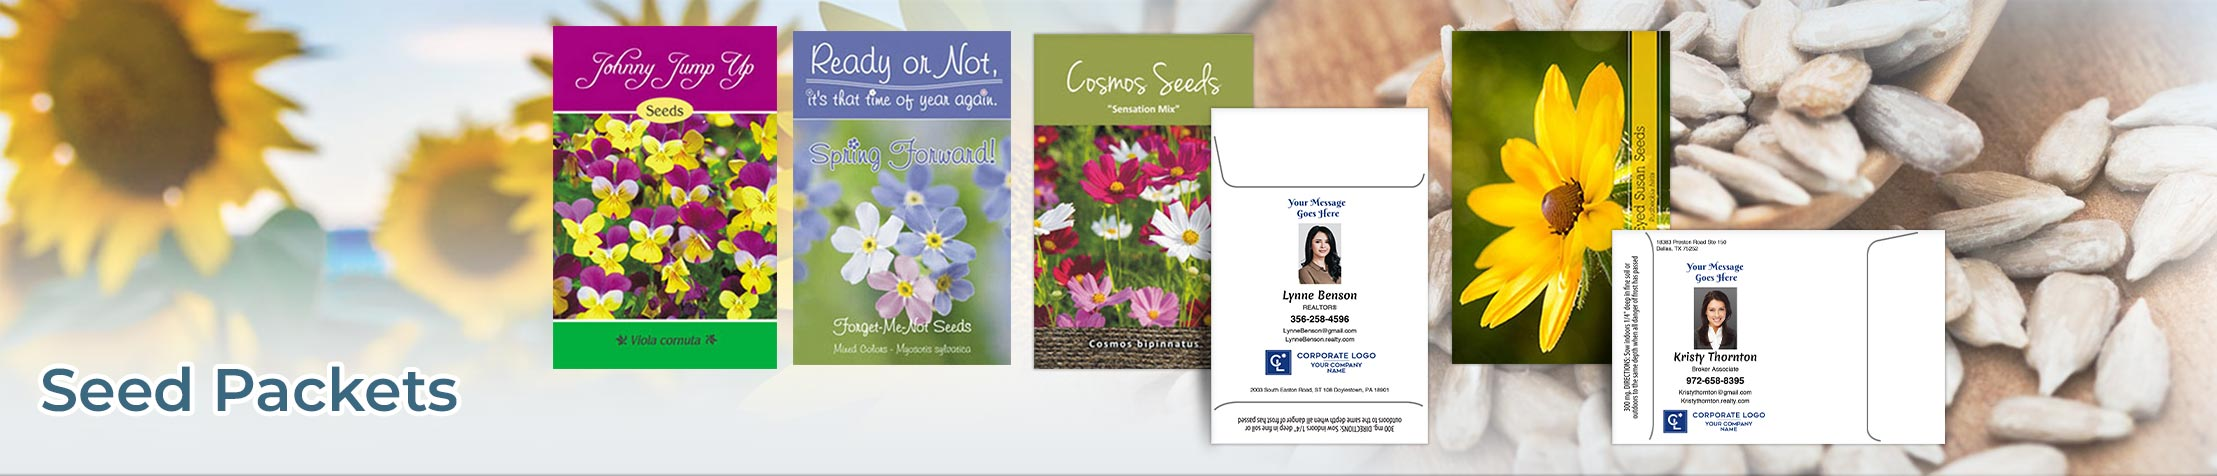 Coldwell Banker Real Estate Seed Packets - Coldwell Banker  personalized realtor promotional products | BestPrintBuy.com